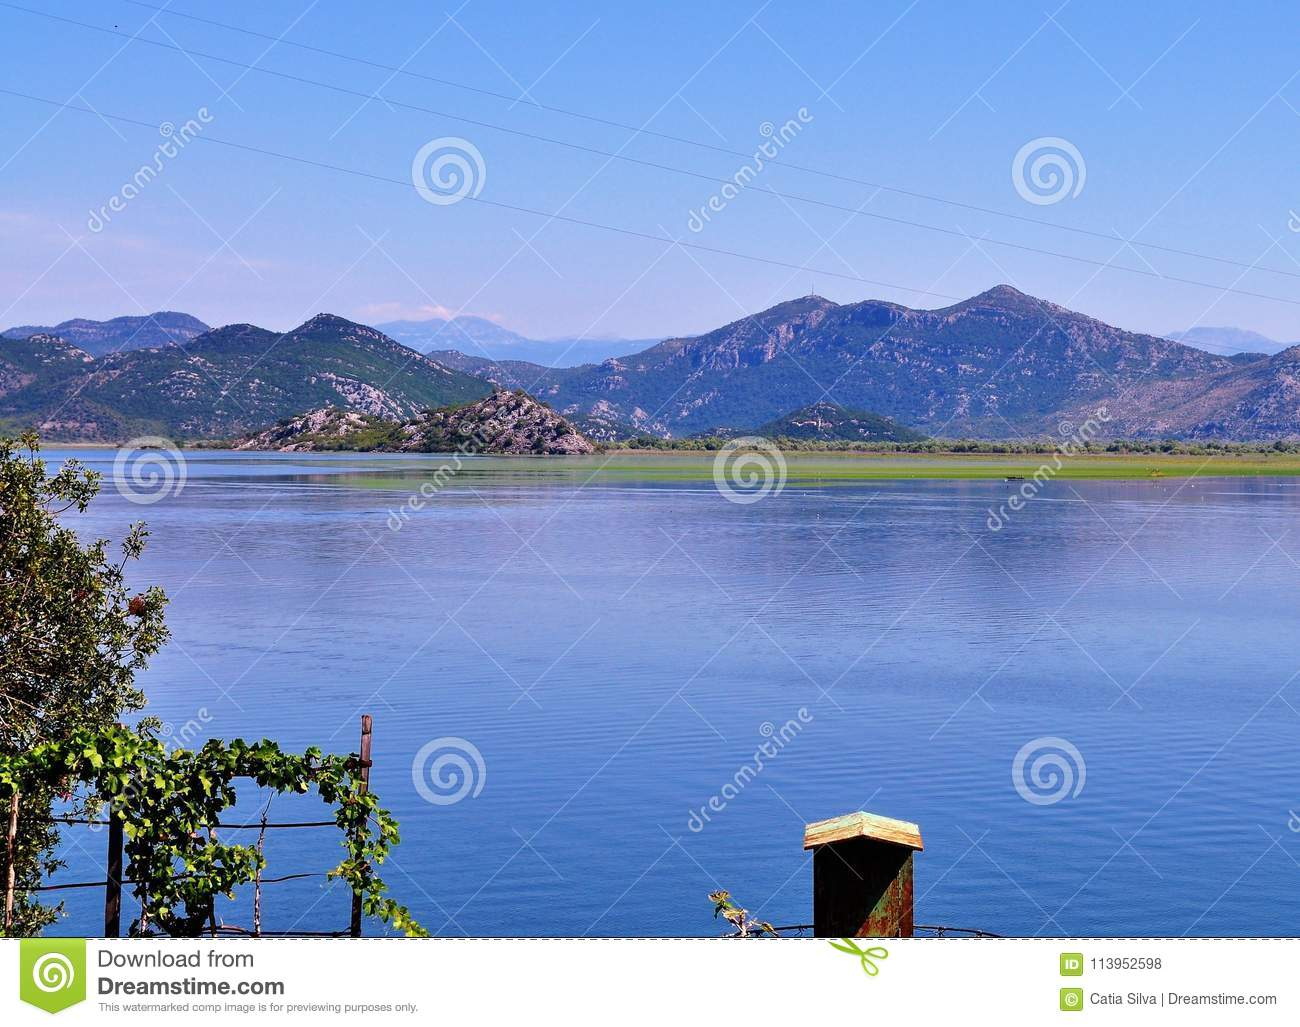 The Lake Skadar and the mountains